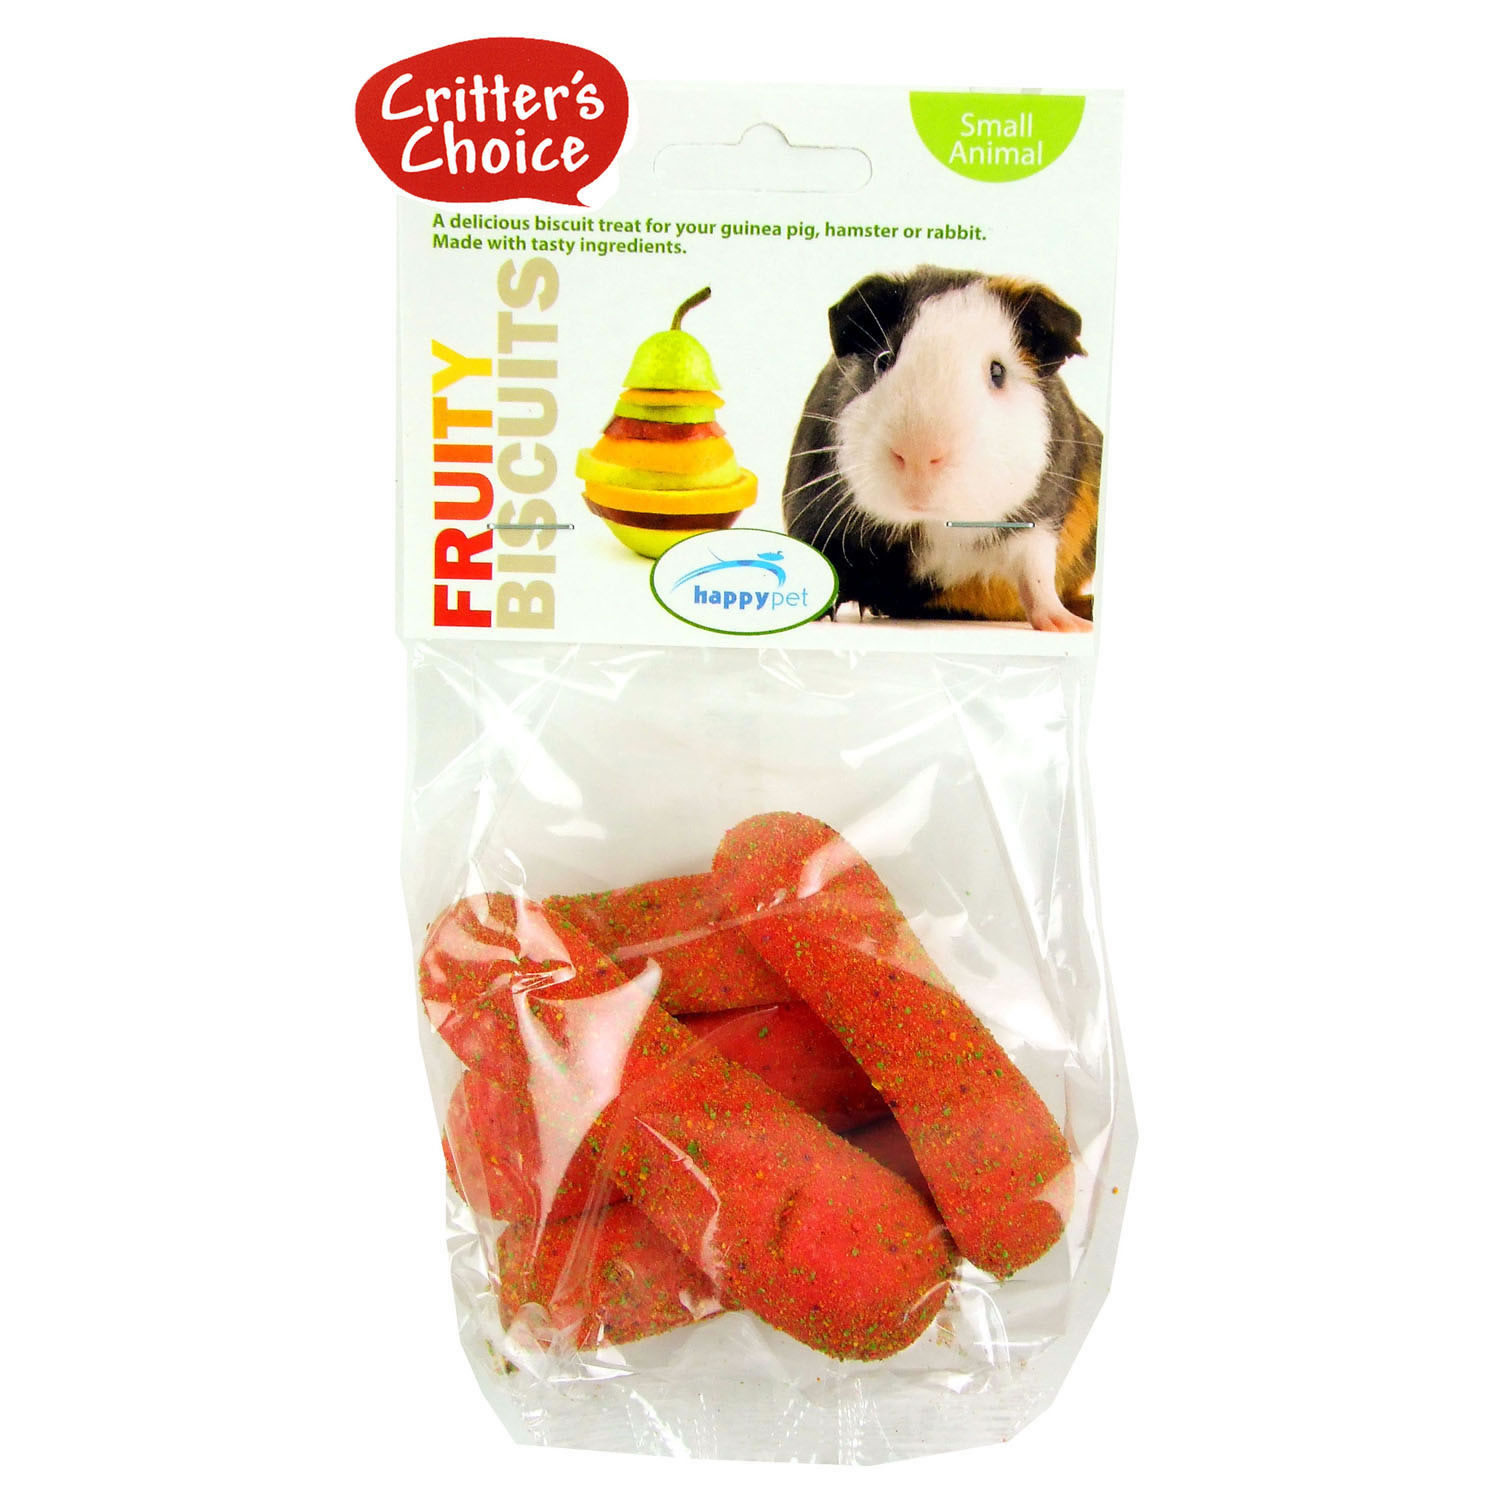 Critter's Choice Fruity Biscuits Small Animal Treats